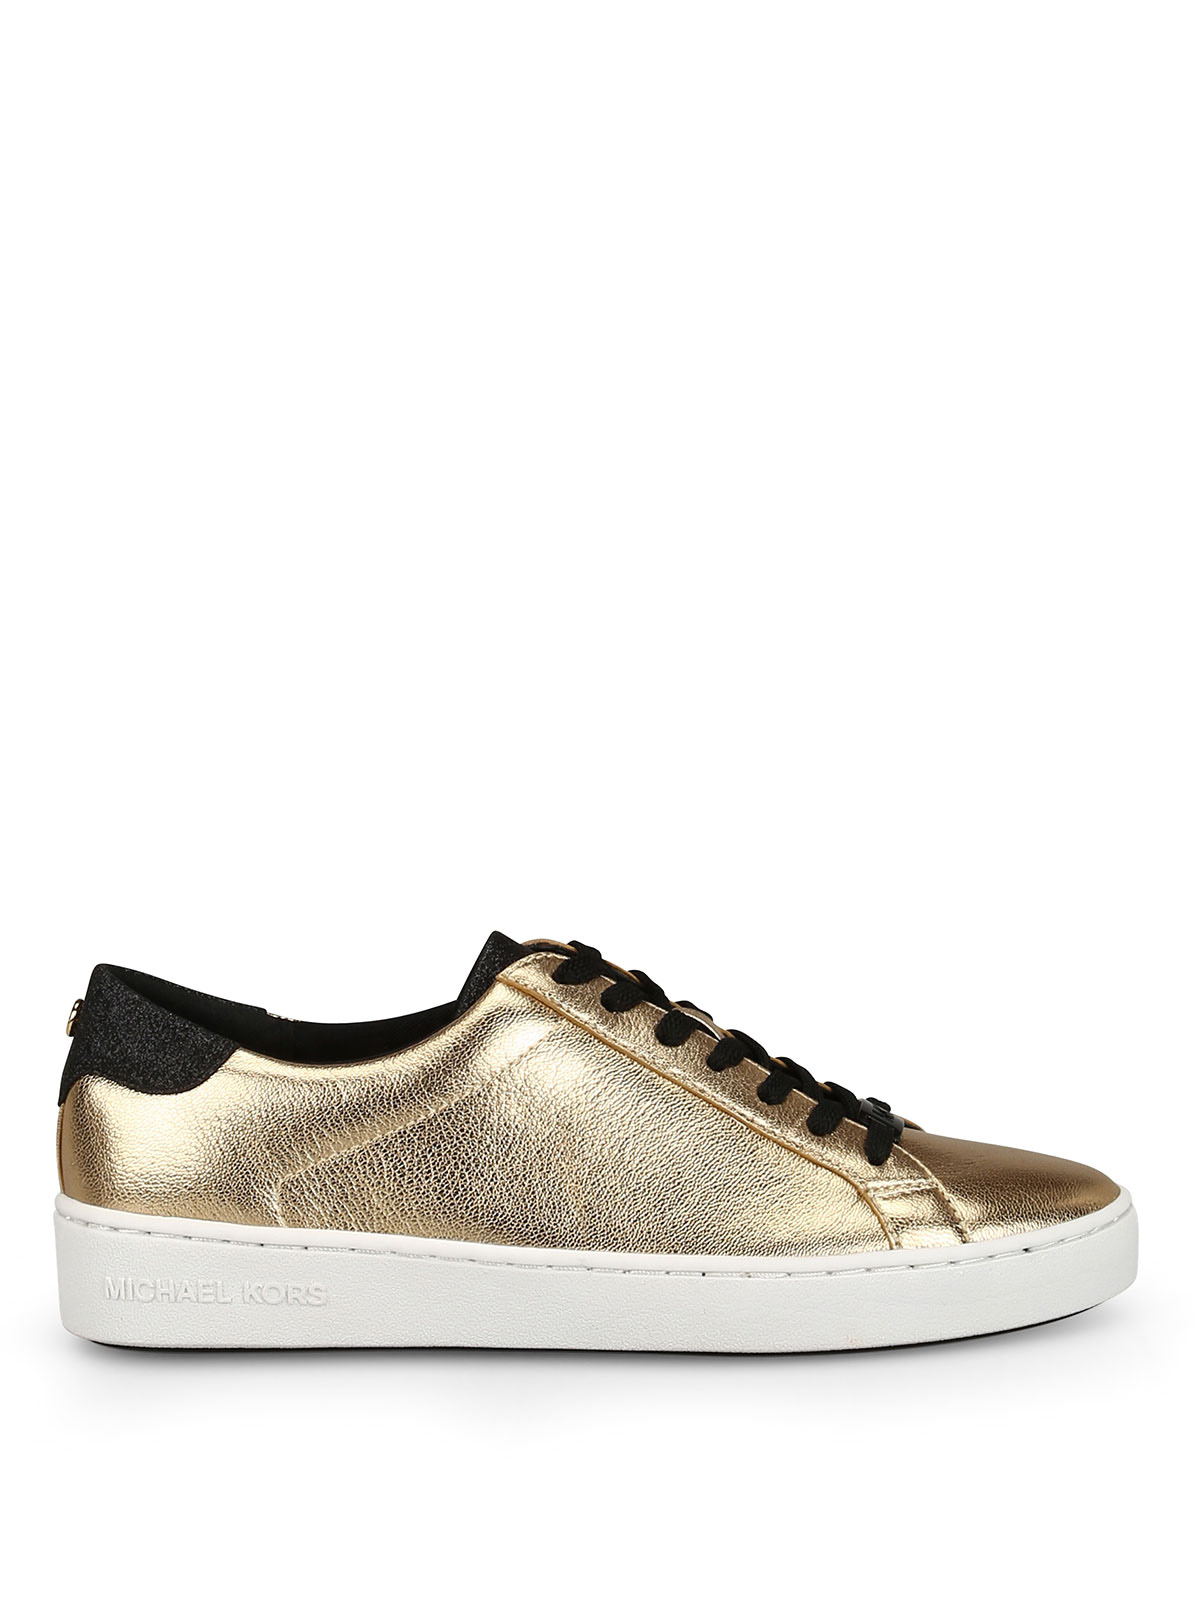 d1bdc8667cd6 Michael Kors - Irving gold-tone leather lace-up sneakers - trainers ...